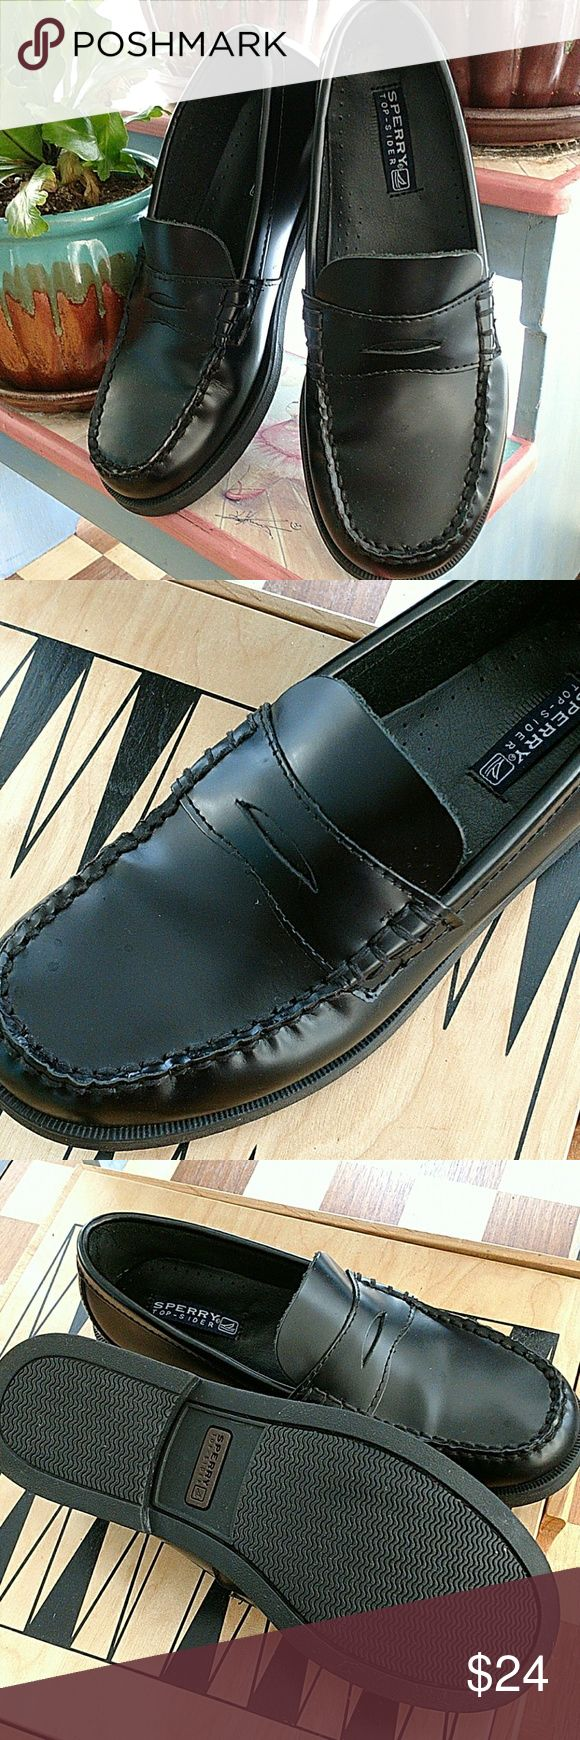 BOYS SPERRY DRESS TOP - SIDER BLACK LEATHER LOAFER Boys COULTON SPERRY TOP-SIDER  black leather penny loafers...You know how much kids hate dress shoes...Why pay an outrageous amount for a quality shoe to wear a few times.Boys size 3.5 ...Great condition Sperry Top-Sider Shoes Dress Shoes